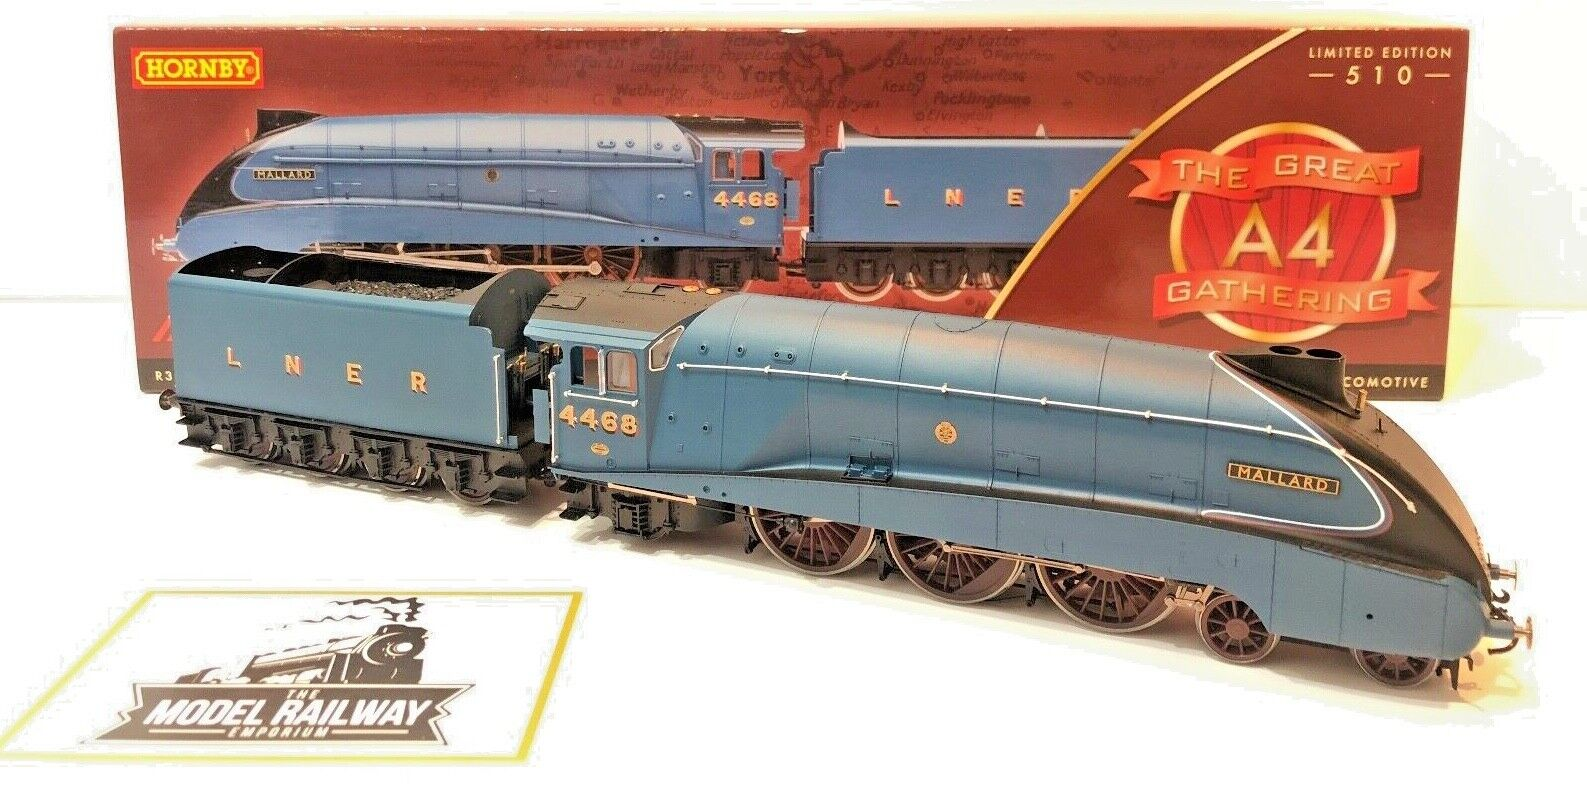 HORNBY 00 GAUGE - R3196  - LNER CLASS A4  MALLARD  GREAT GATHEbague LIMITED ED  magasin fashional à vendre